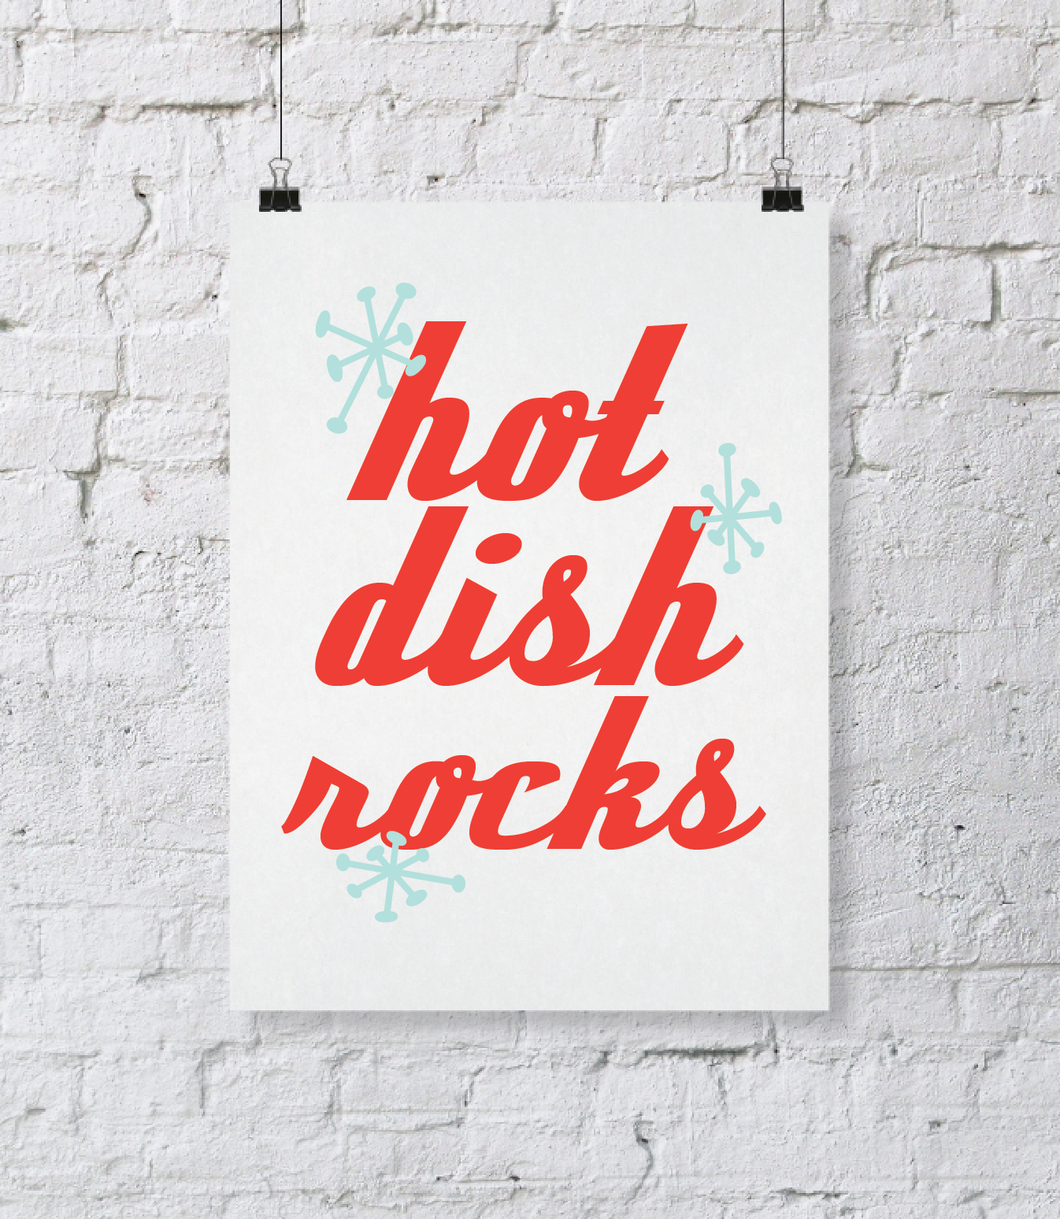 Hotdish Rocks Digital Download Print. DIY Printable Wall Art. Office Decor. Kitchen Decor. Typography Wall Art. Printable Wall Quote Home Decor